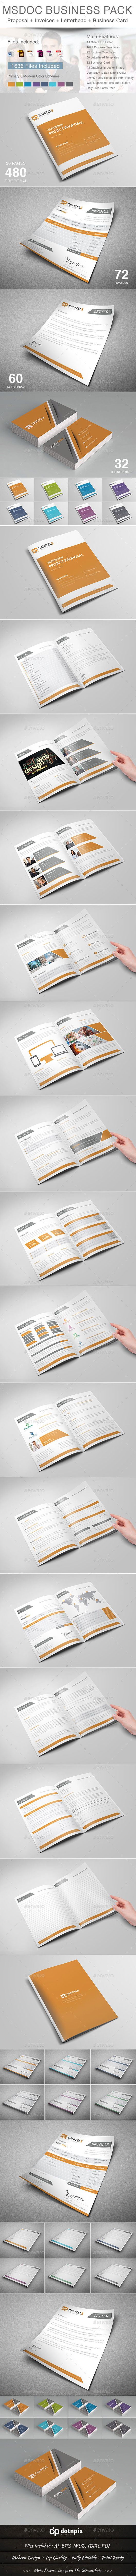 Msdoc Business Pack - Proposals & Invoices Stationery